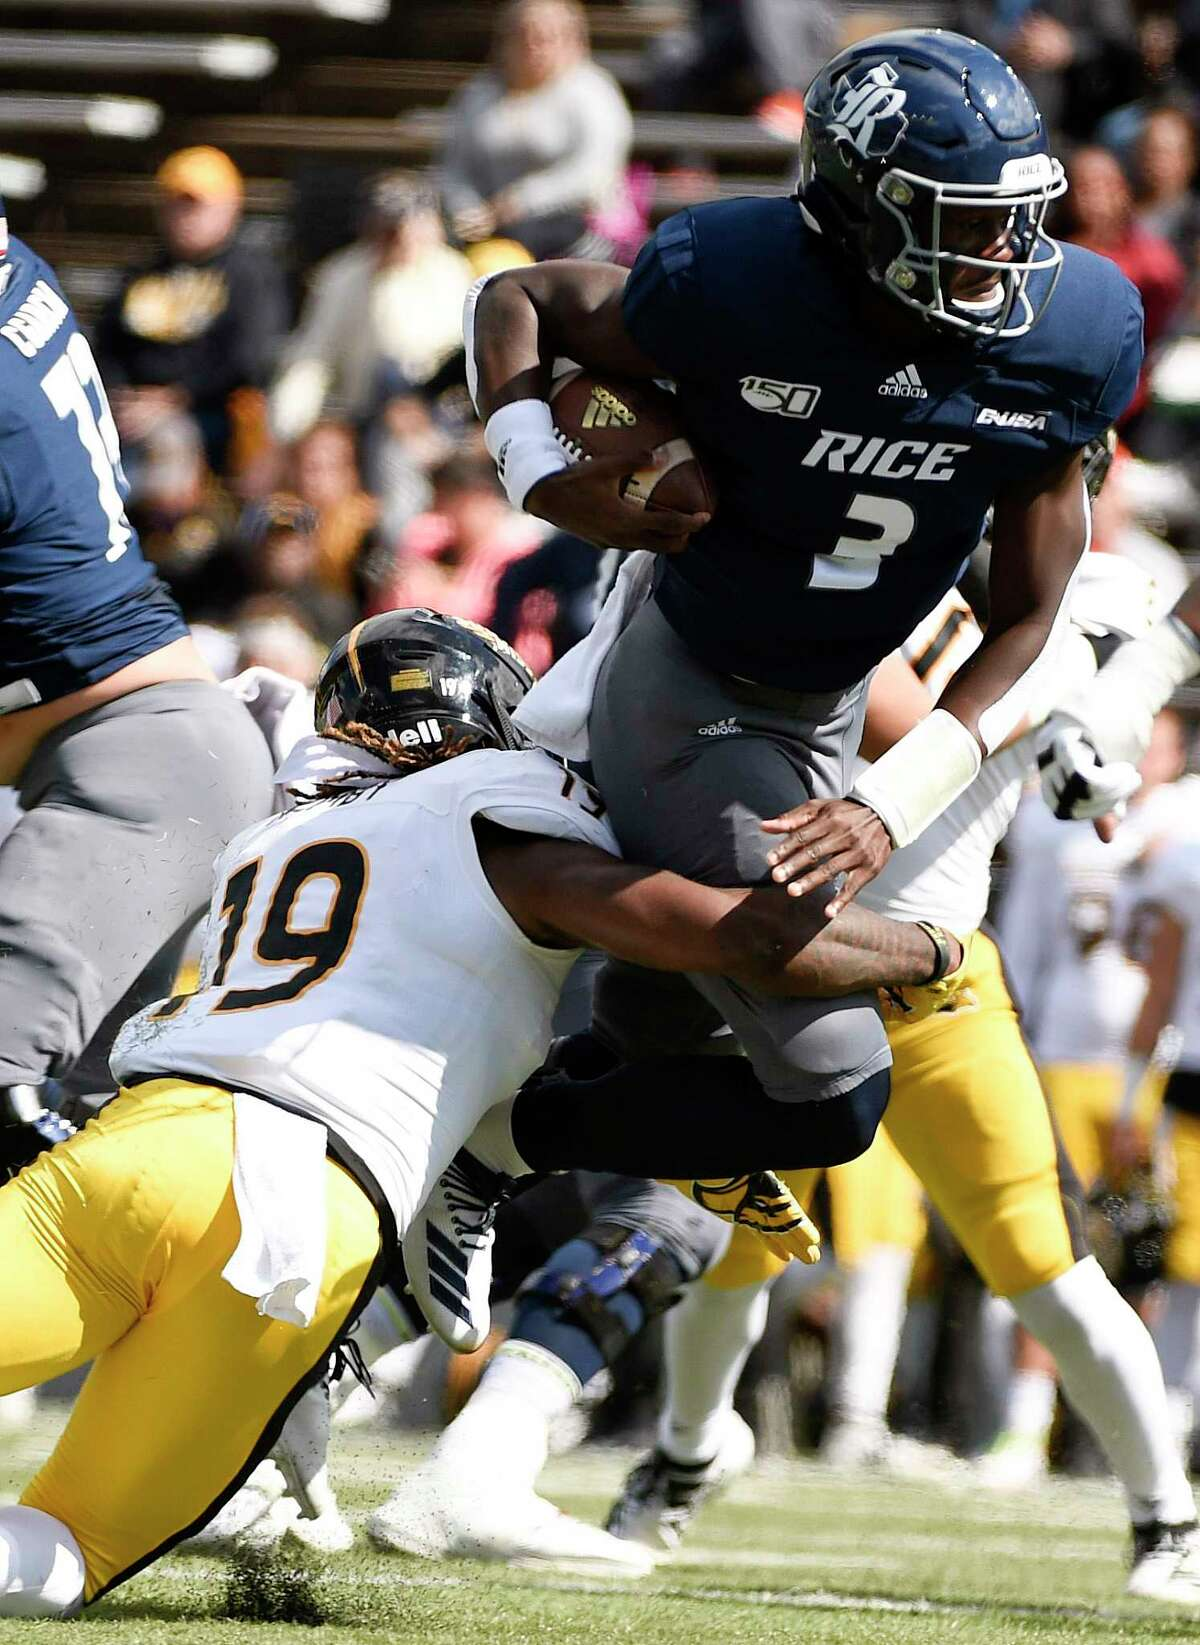 Rice quarterback JoVoni Johnson (3) is tackled by Southern Miss defensive back Ky'el Hemby during the first half of an NCAA college football game, Saturday, Oct. 26, 2019, in Houston.